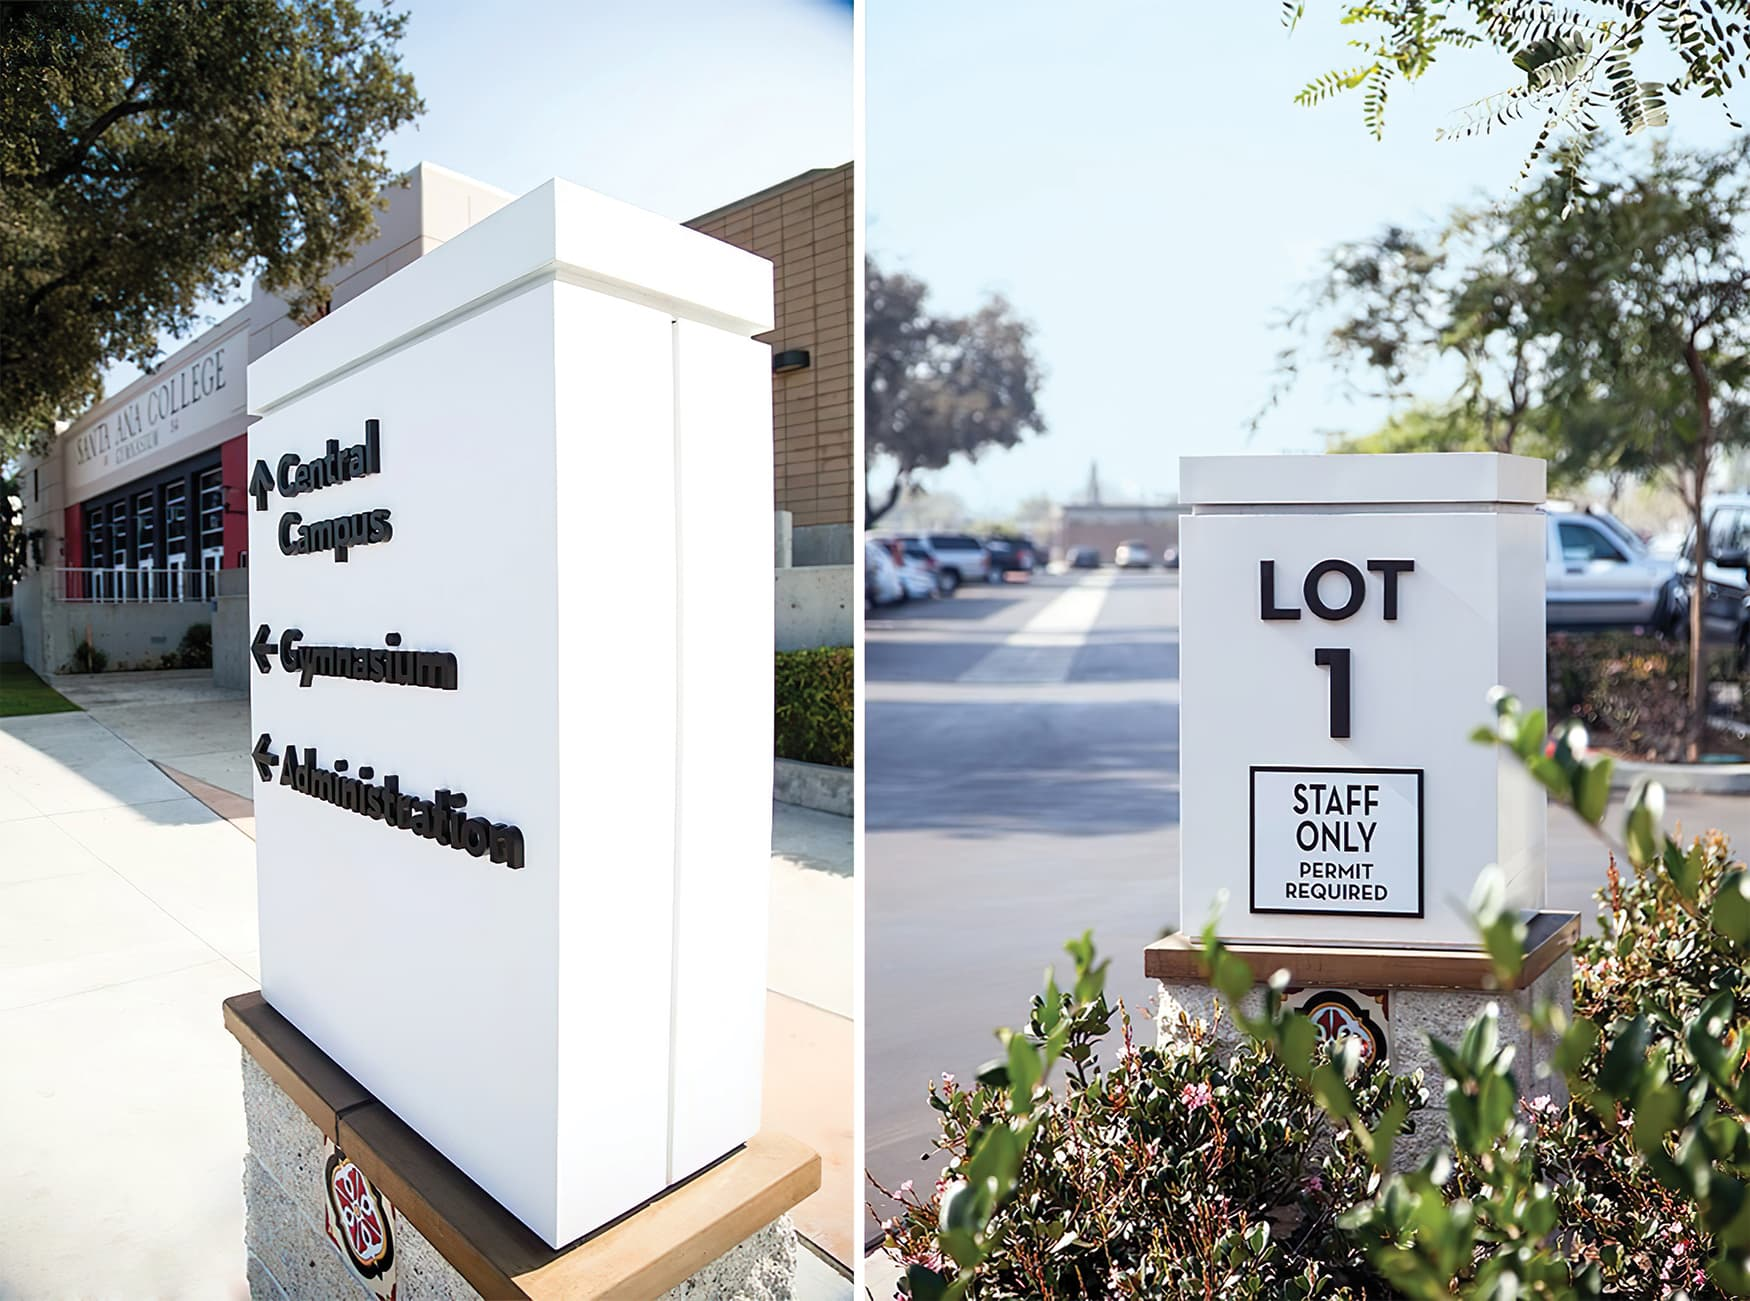 RSM Design worked with Santa Ana College to create a wayfinding system and public art system for the higher-education campus